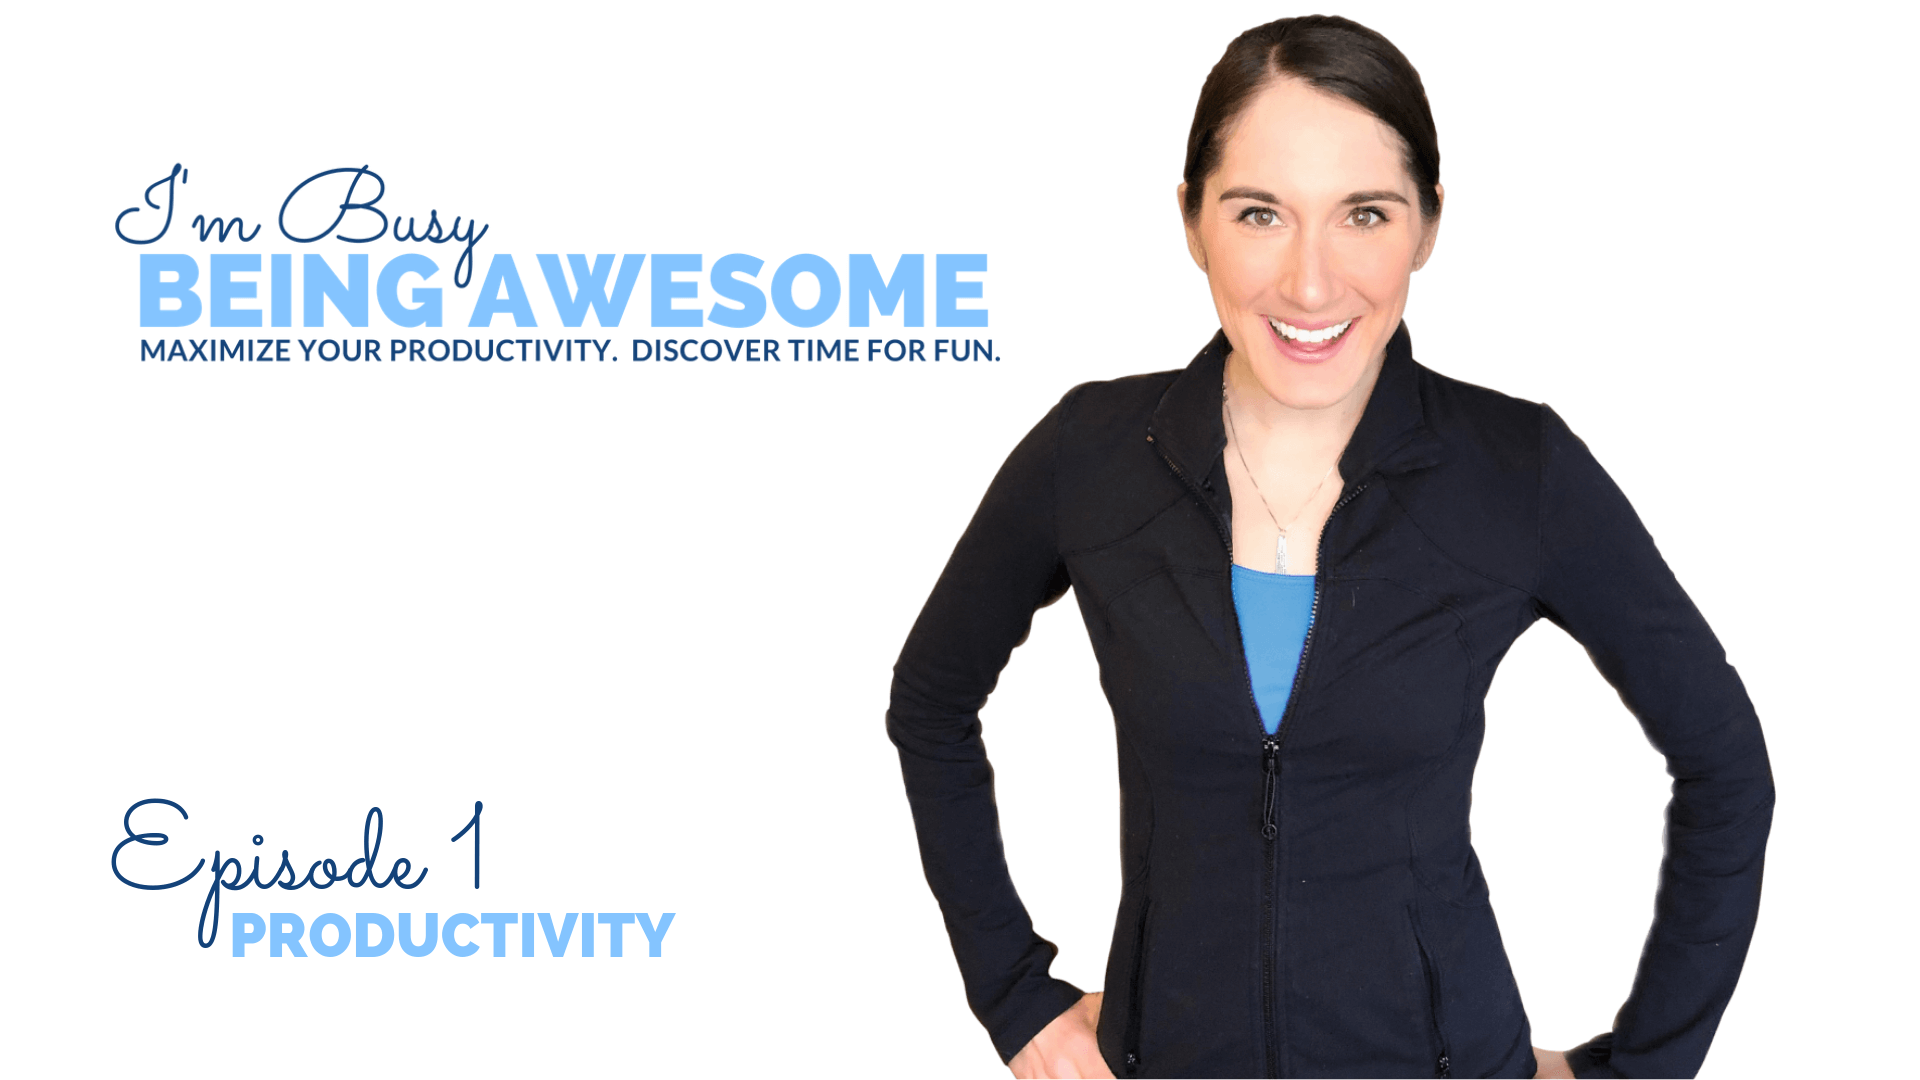 Episode 1: Three Tips You Need to Easily Increase Your Productivity